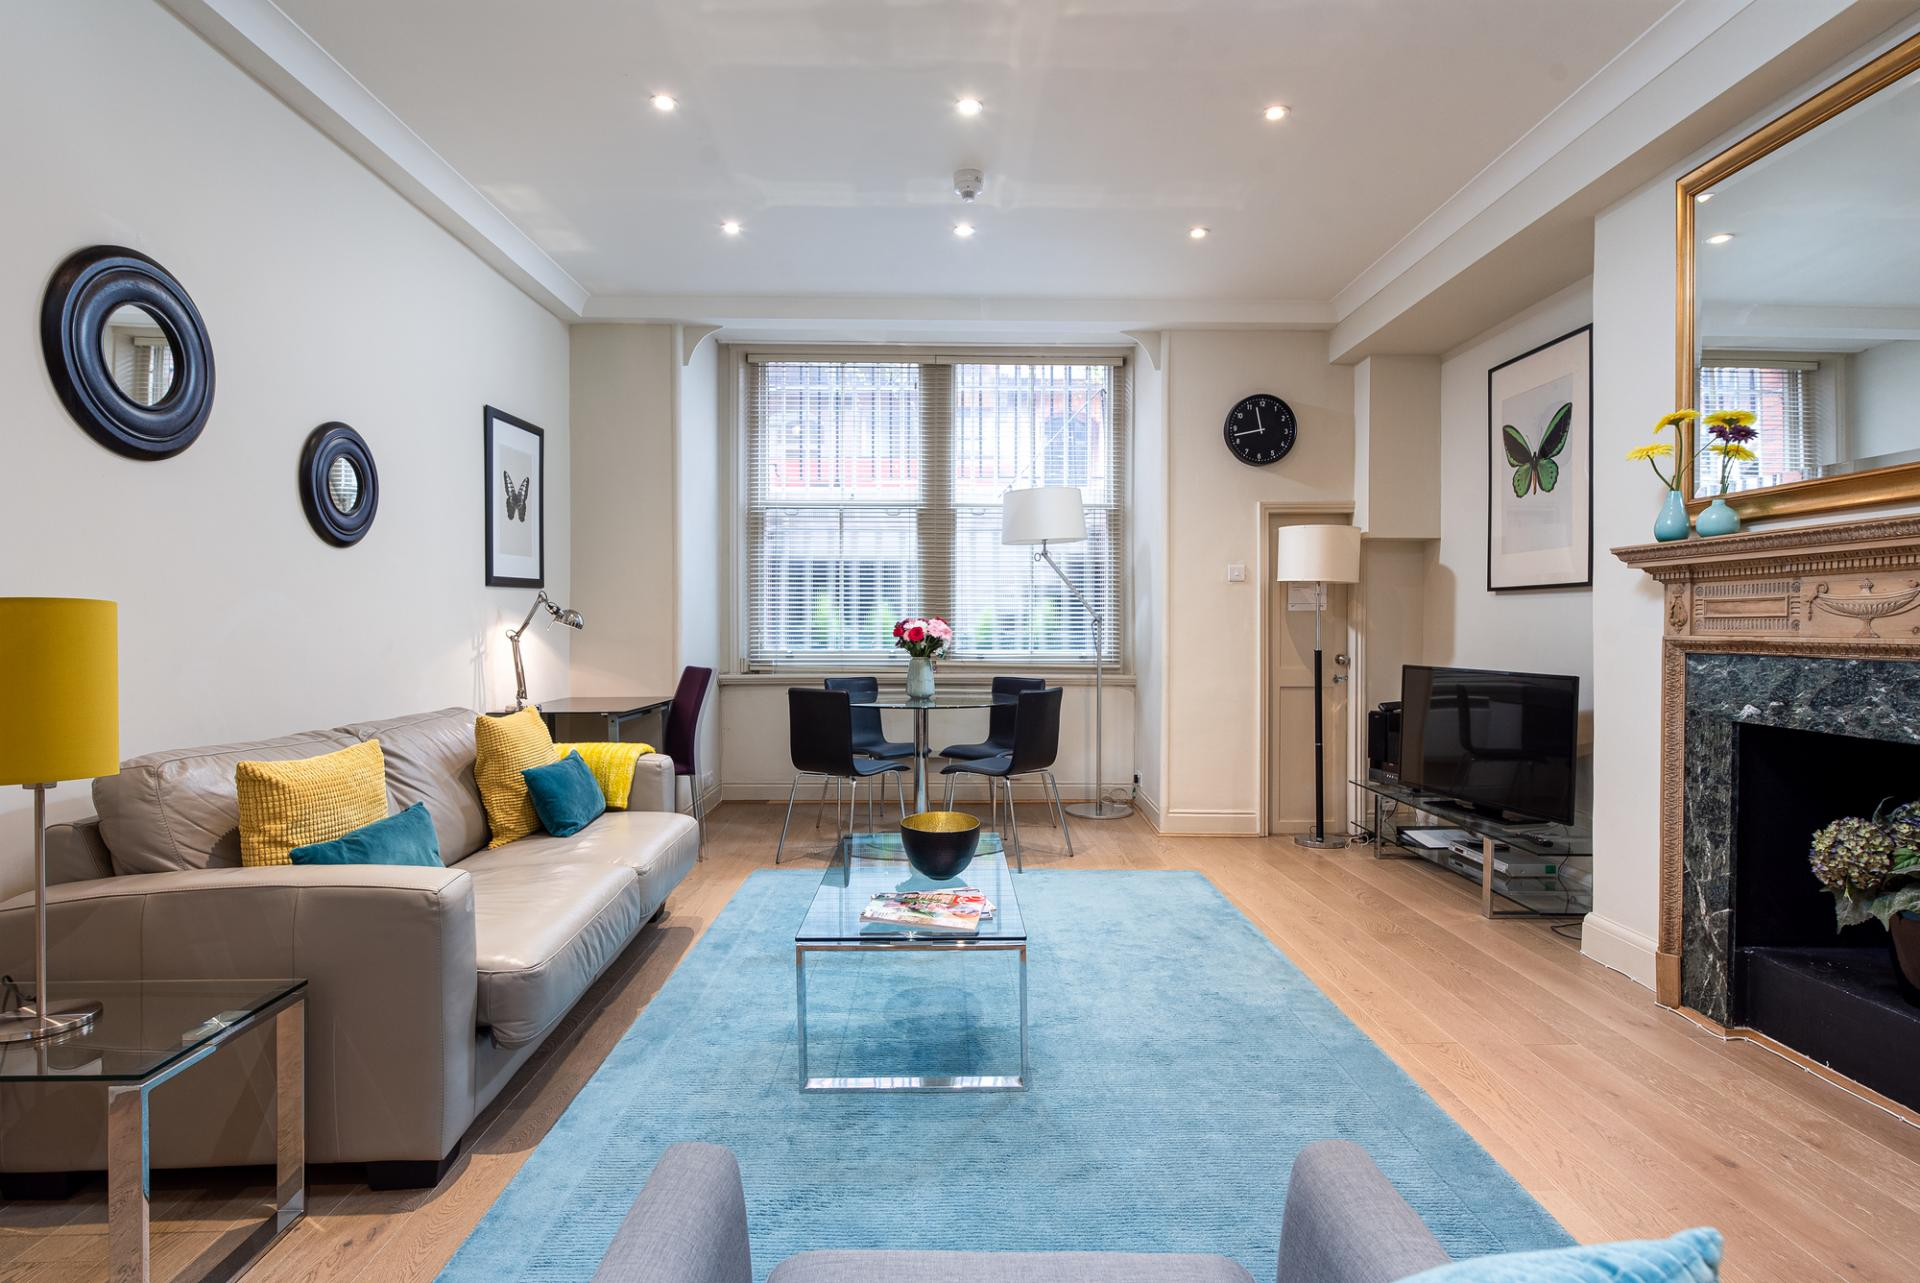 DLiving Room at raycott Place Serviced Apartments, Chelsea, London